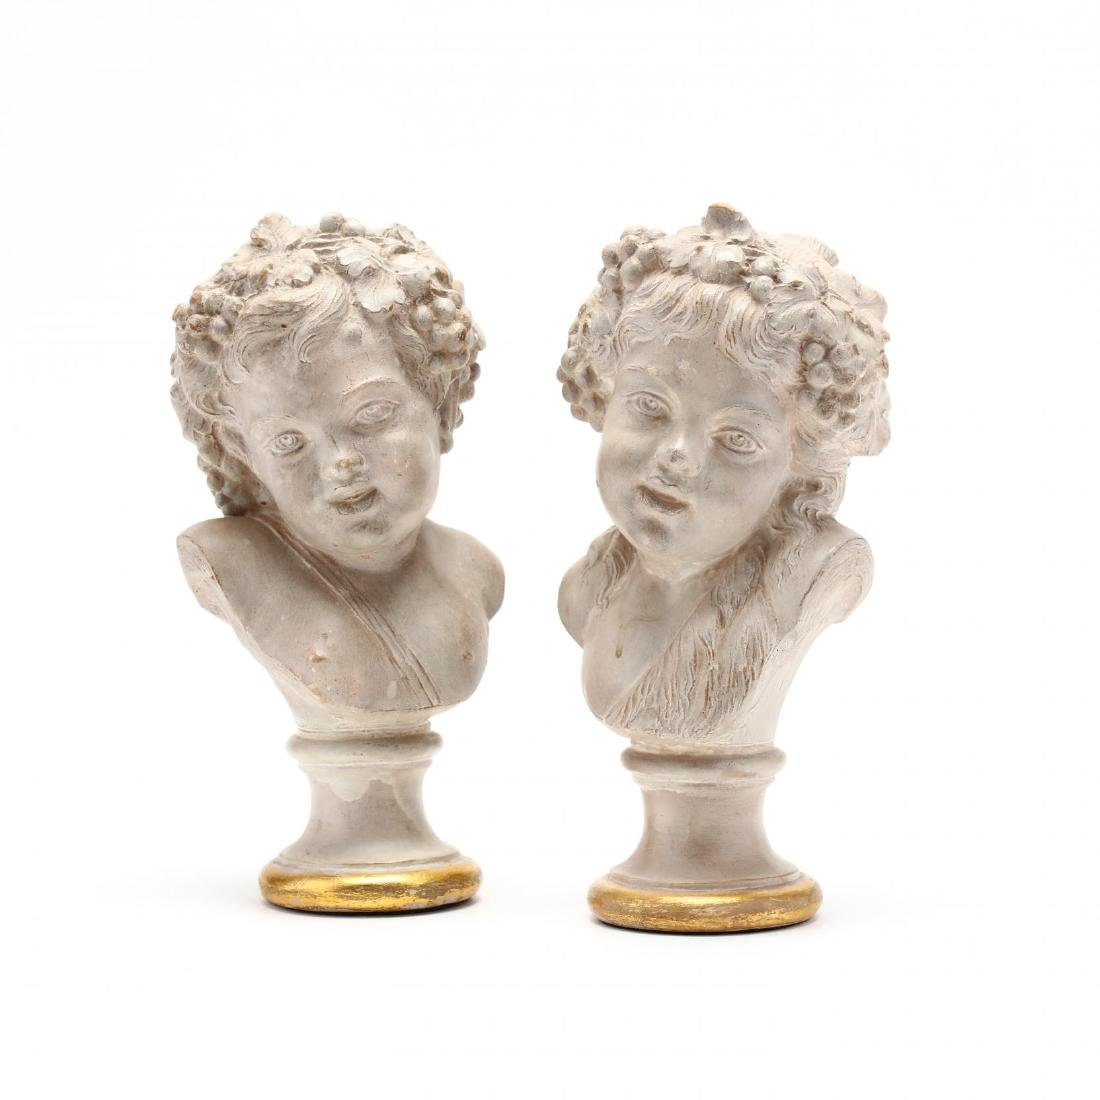 after Claude Michel (French, 1738-1814), Pair of Busts